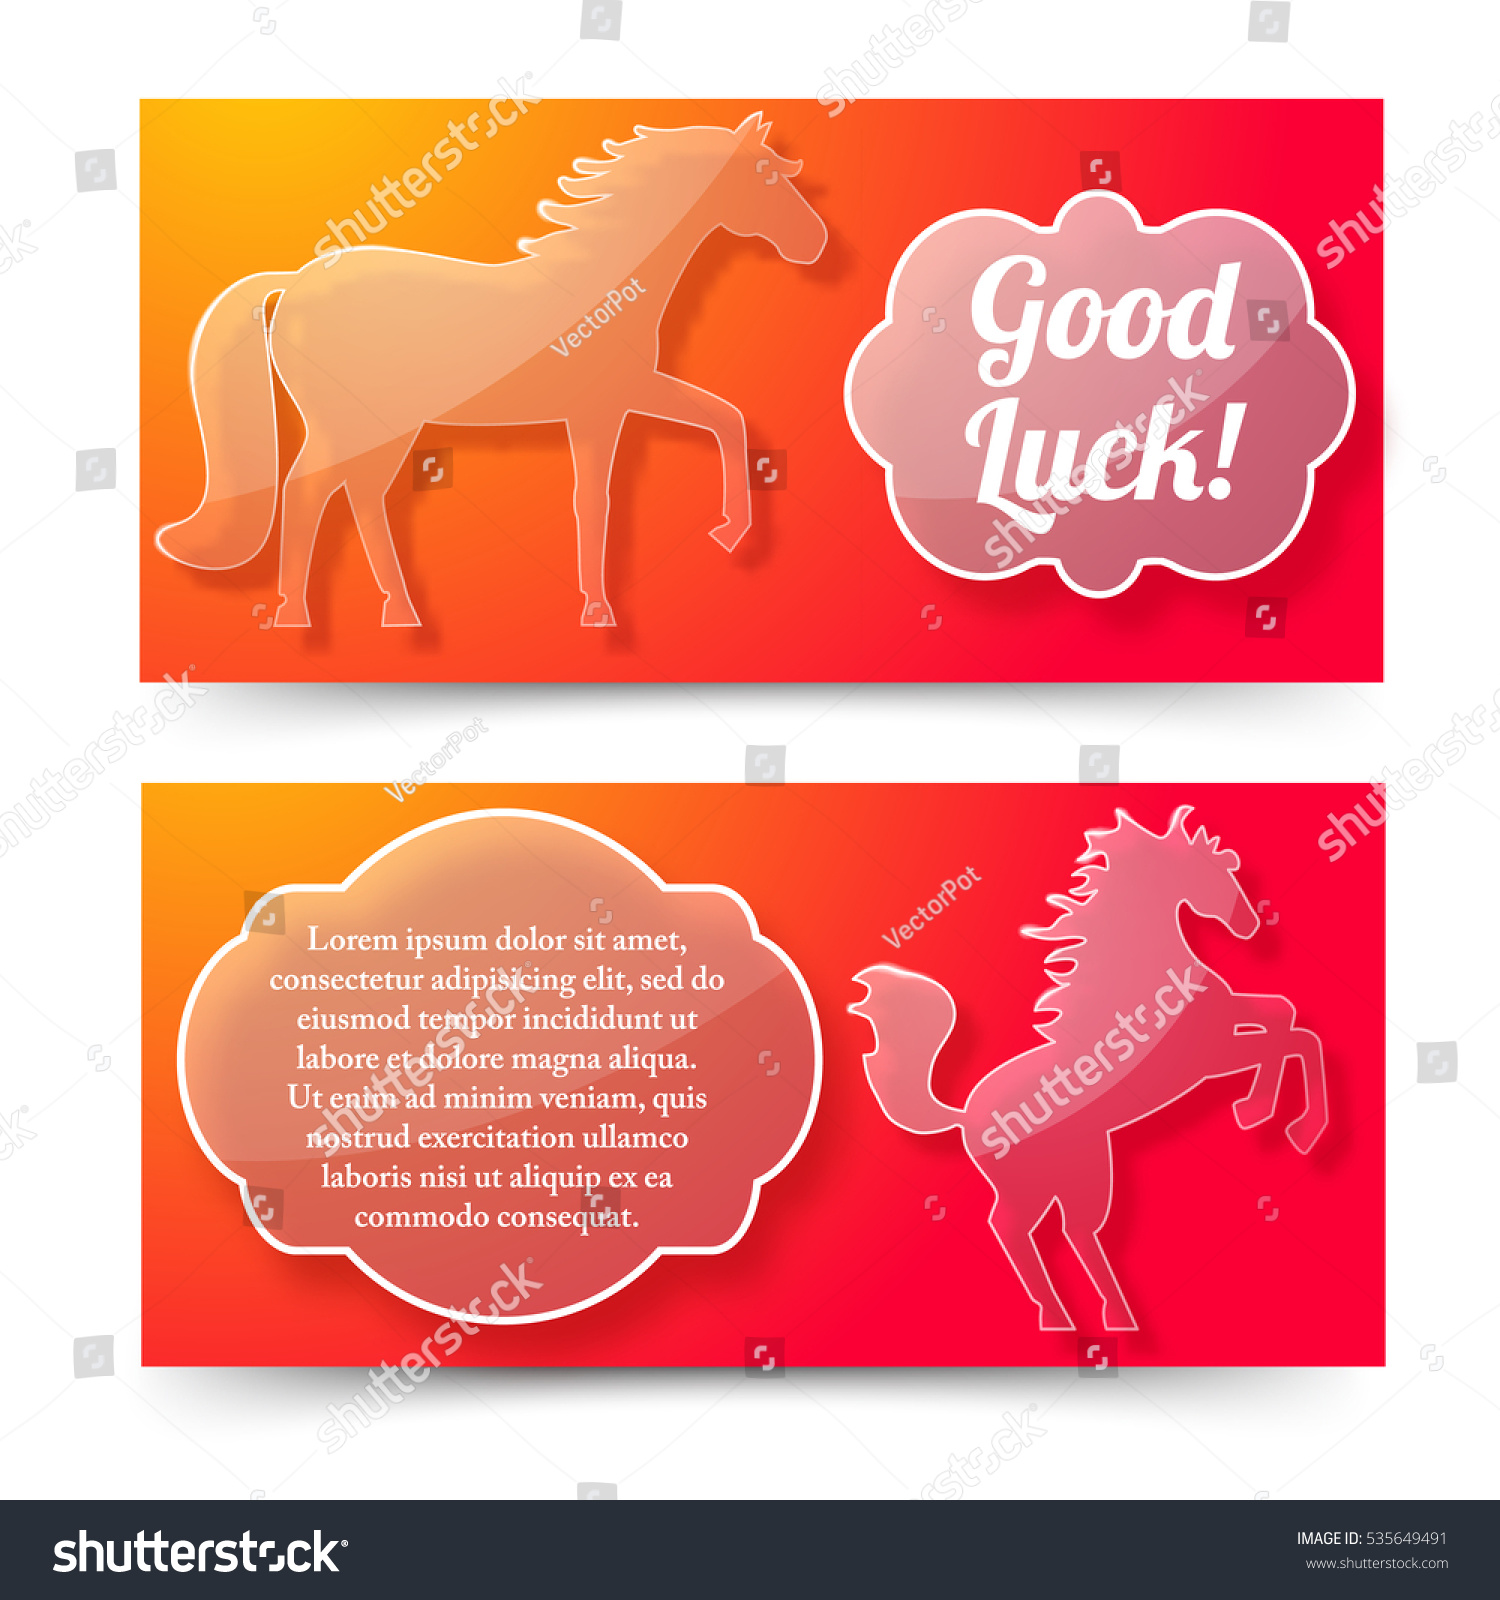 Happy new year horse banners set stock vector 535649491 shutterstock happy new year of horse banners set with good luck wishing and jumping horse symbols flat buycottarizona